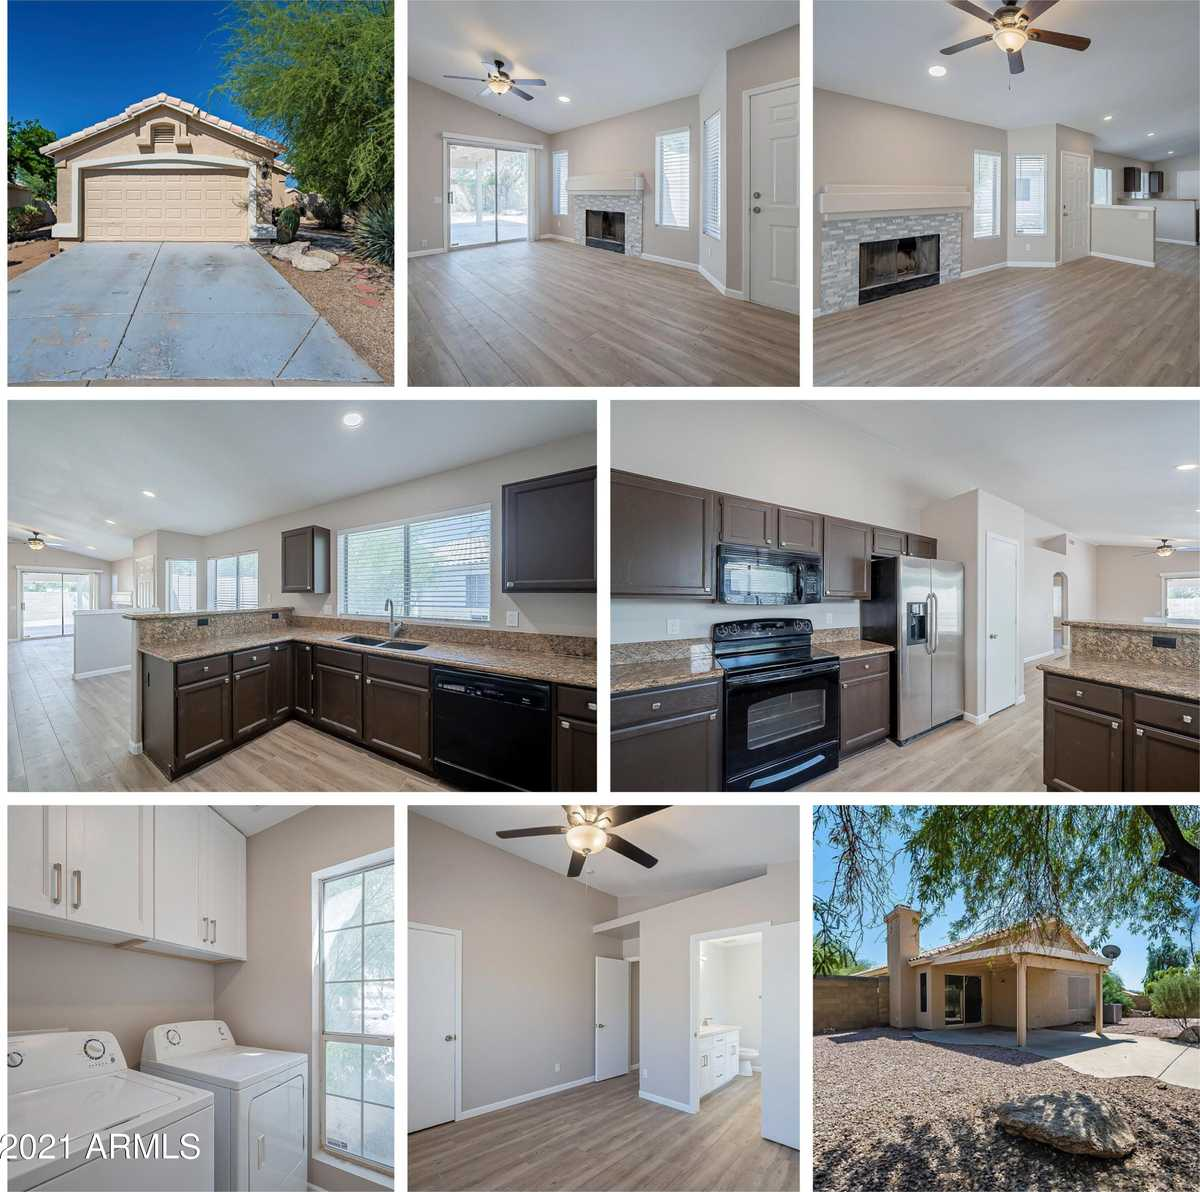 $425,000 - 3Br/2Ba - Home for Sale in Premiere At Summer Breeze Two Lot 97-166 Tr A,b, Phoenix